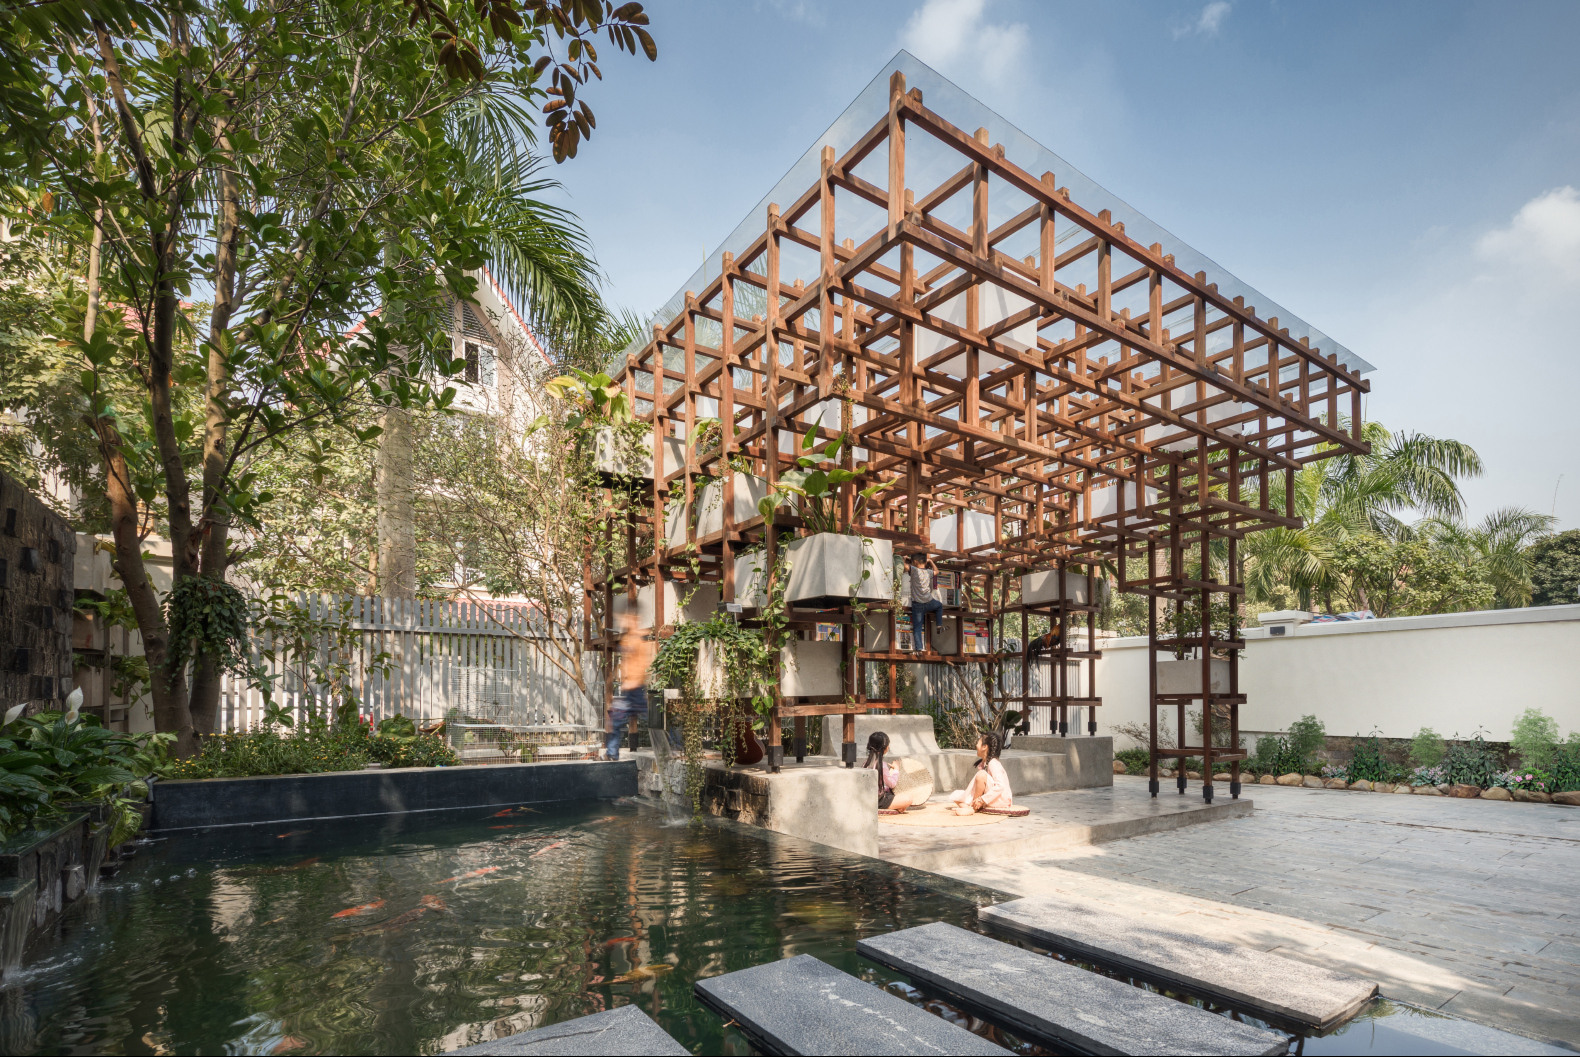 New library in Hanoi aims to show young children the benefits of aquaponics in an urban setting